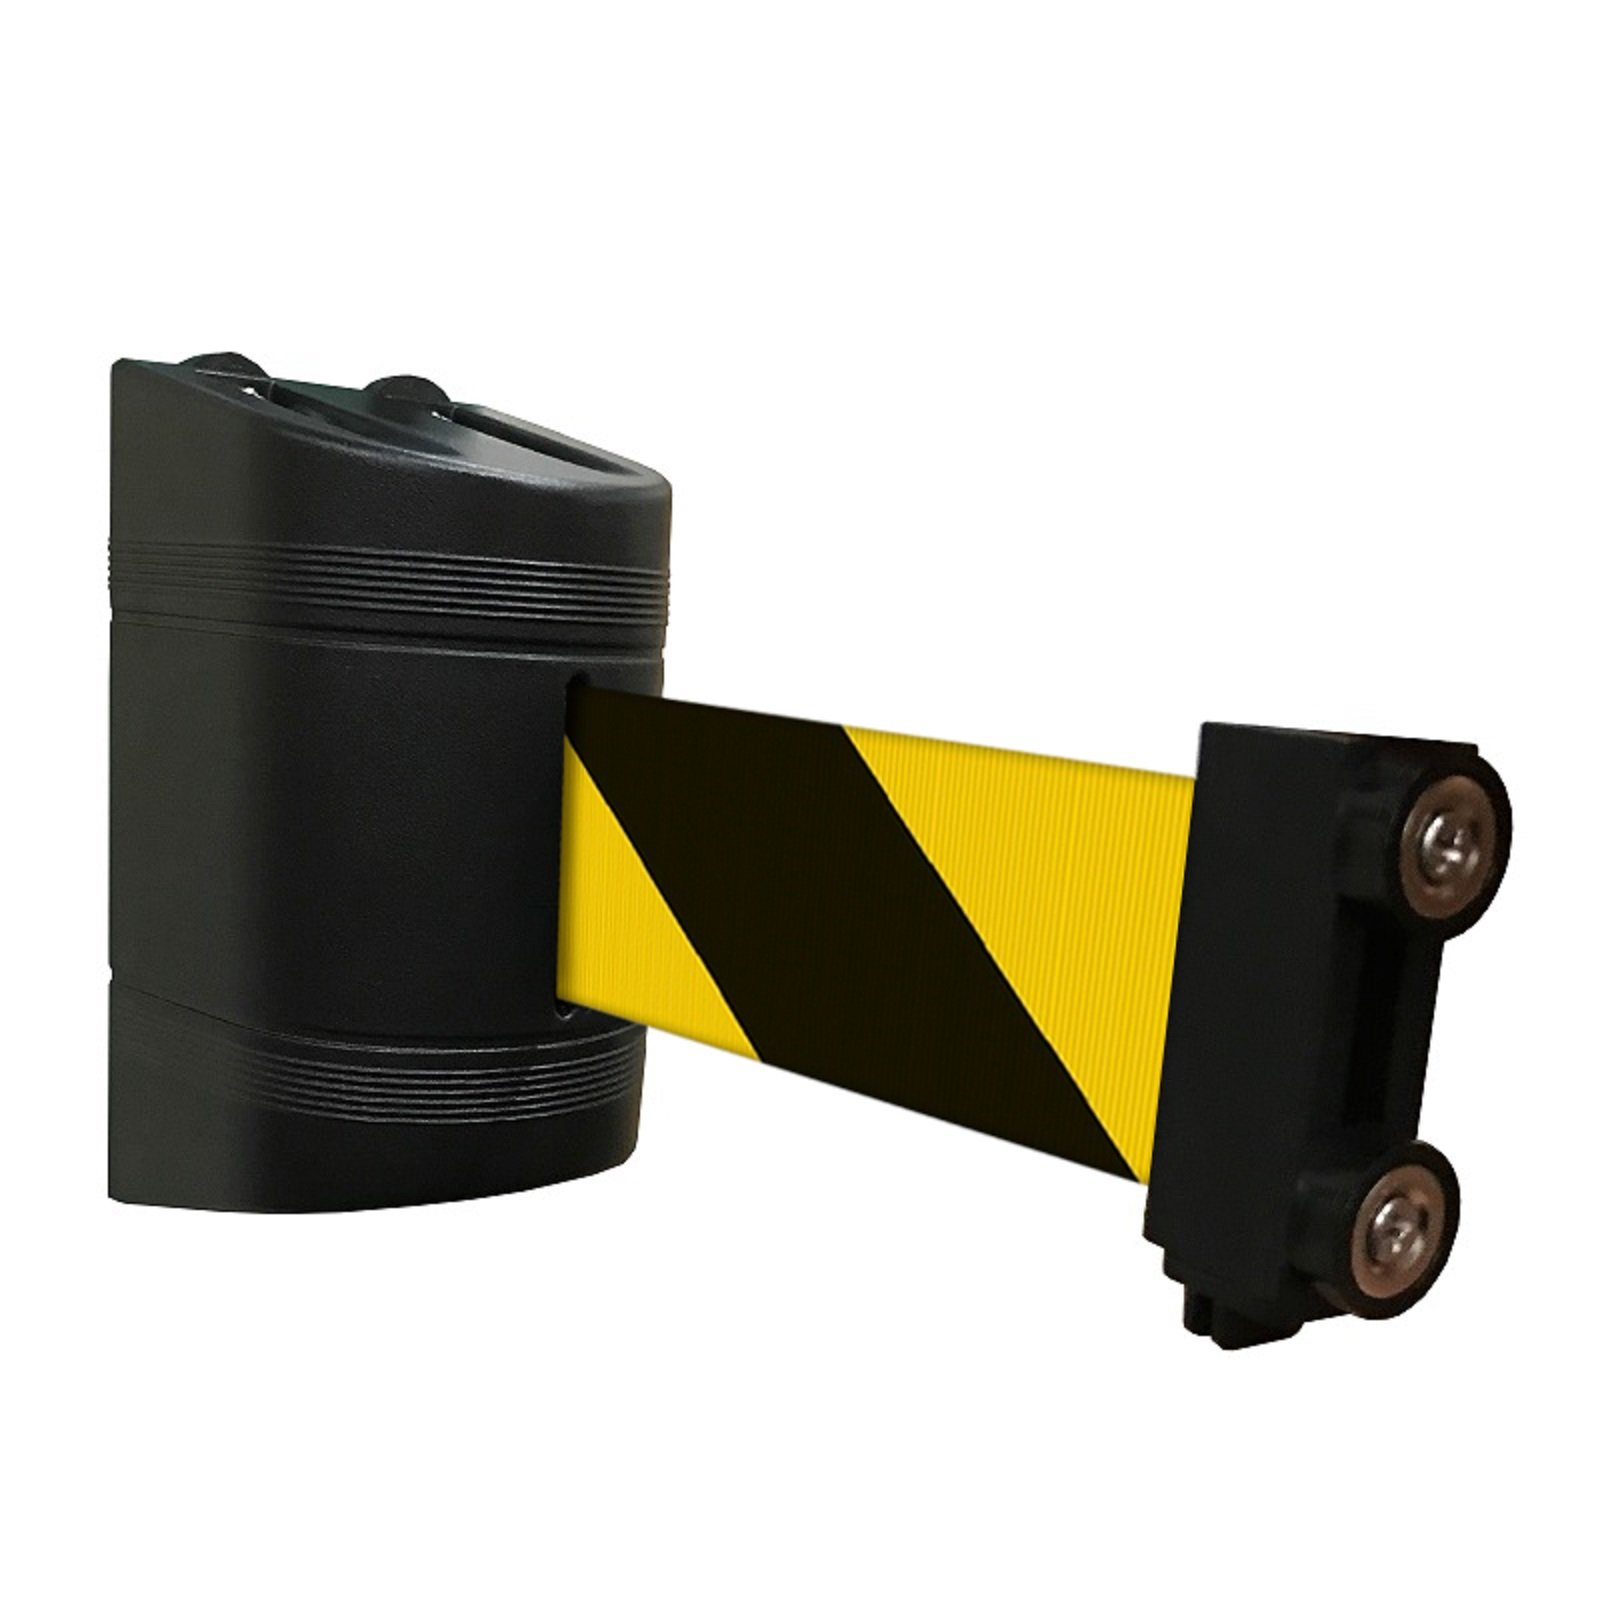 Magnetic Retractable Wall Barrier 120''L (YEL/Blk)